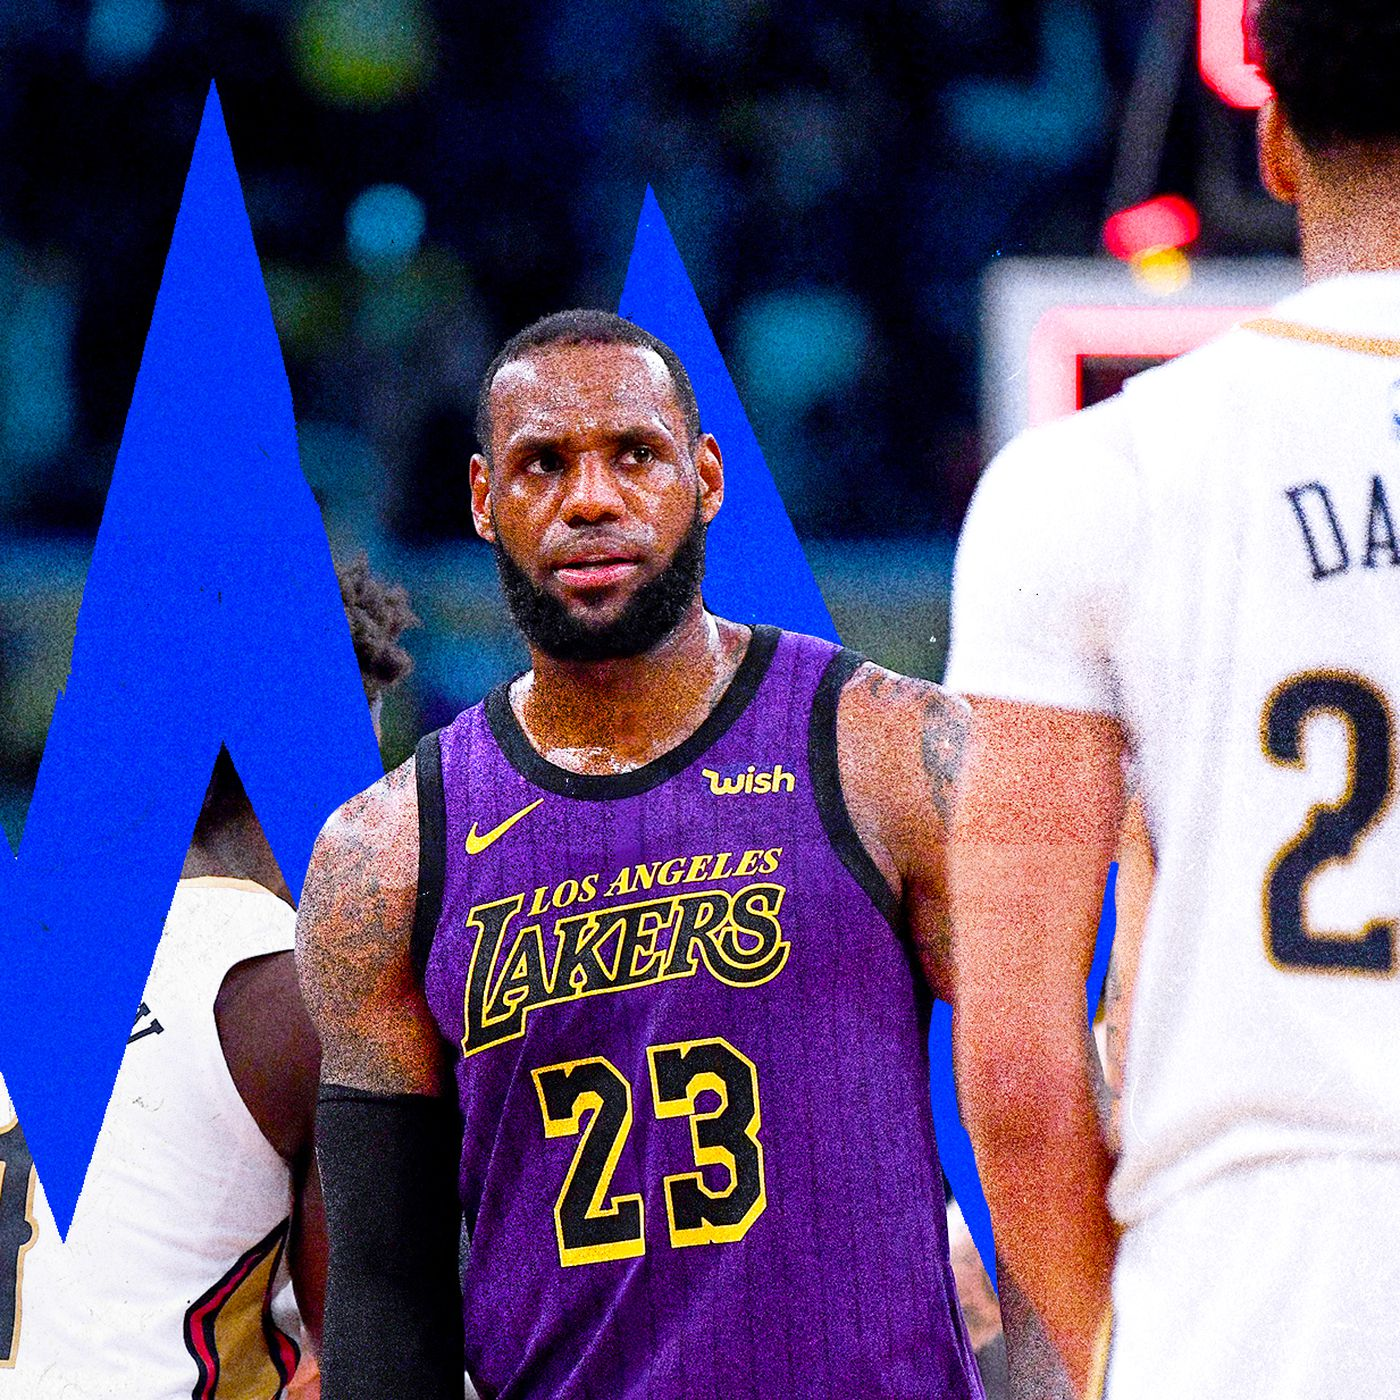 The Lakers have no easy answers after the Anthony Davis non-trade ...